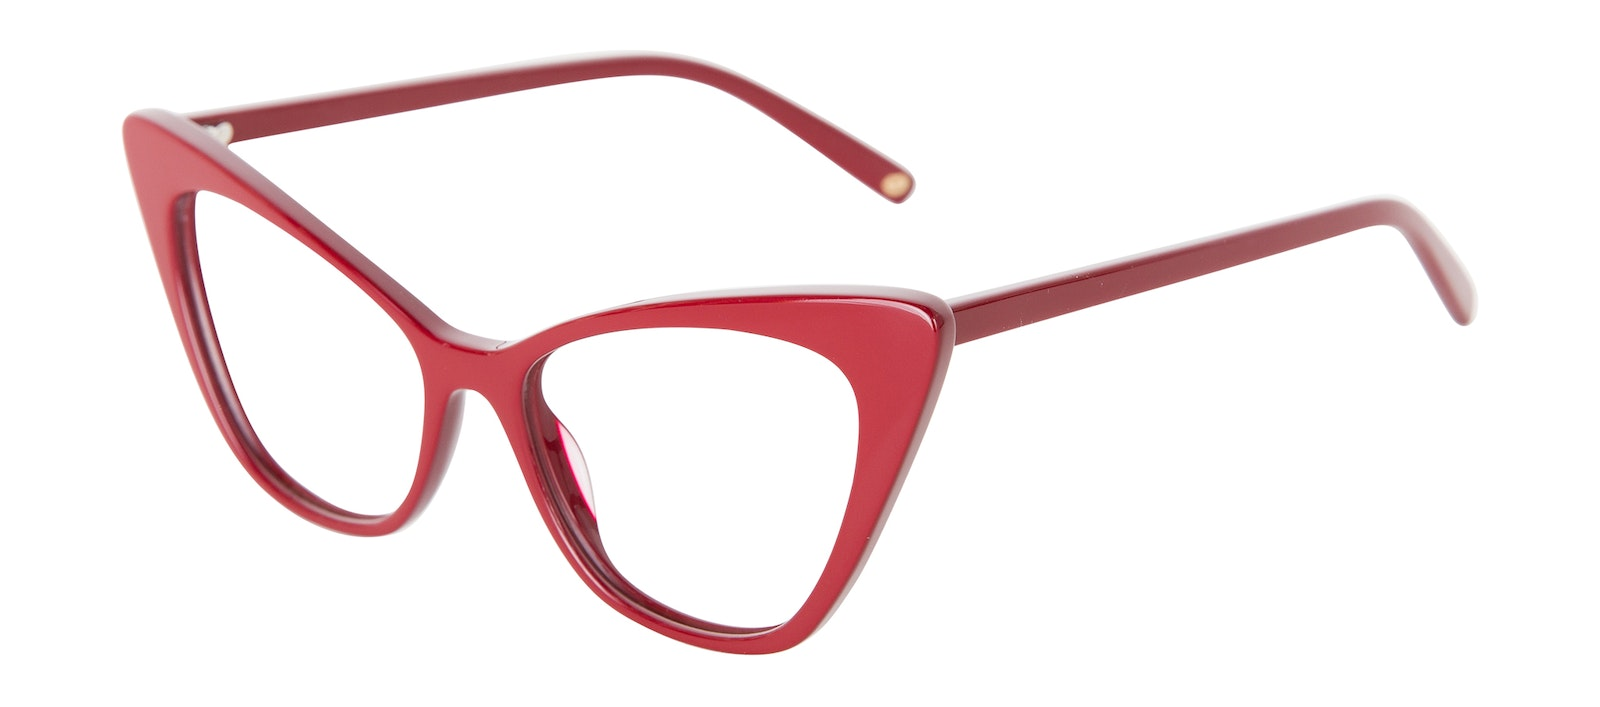 Affordable Fashion Glasses Cat Eye Eyeglasses Women Keiko Lynn Ryder Red Tilt